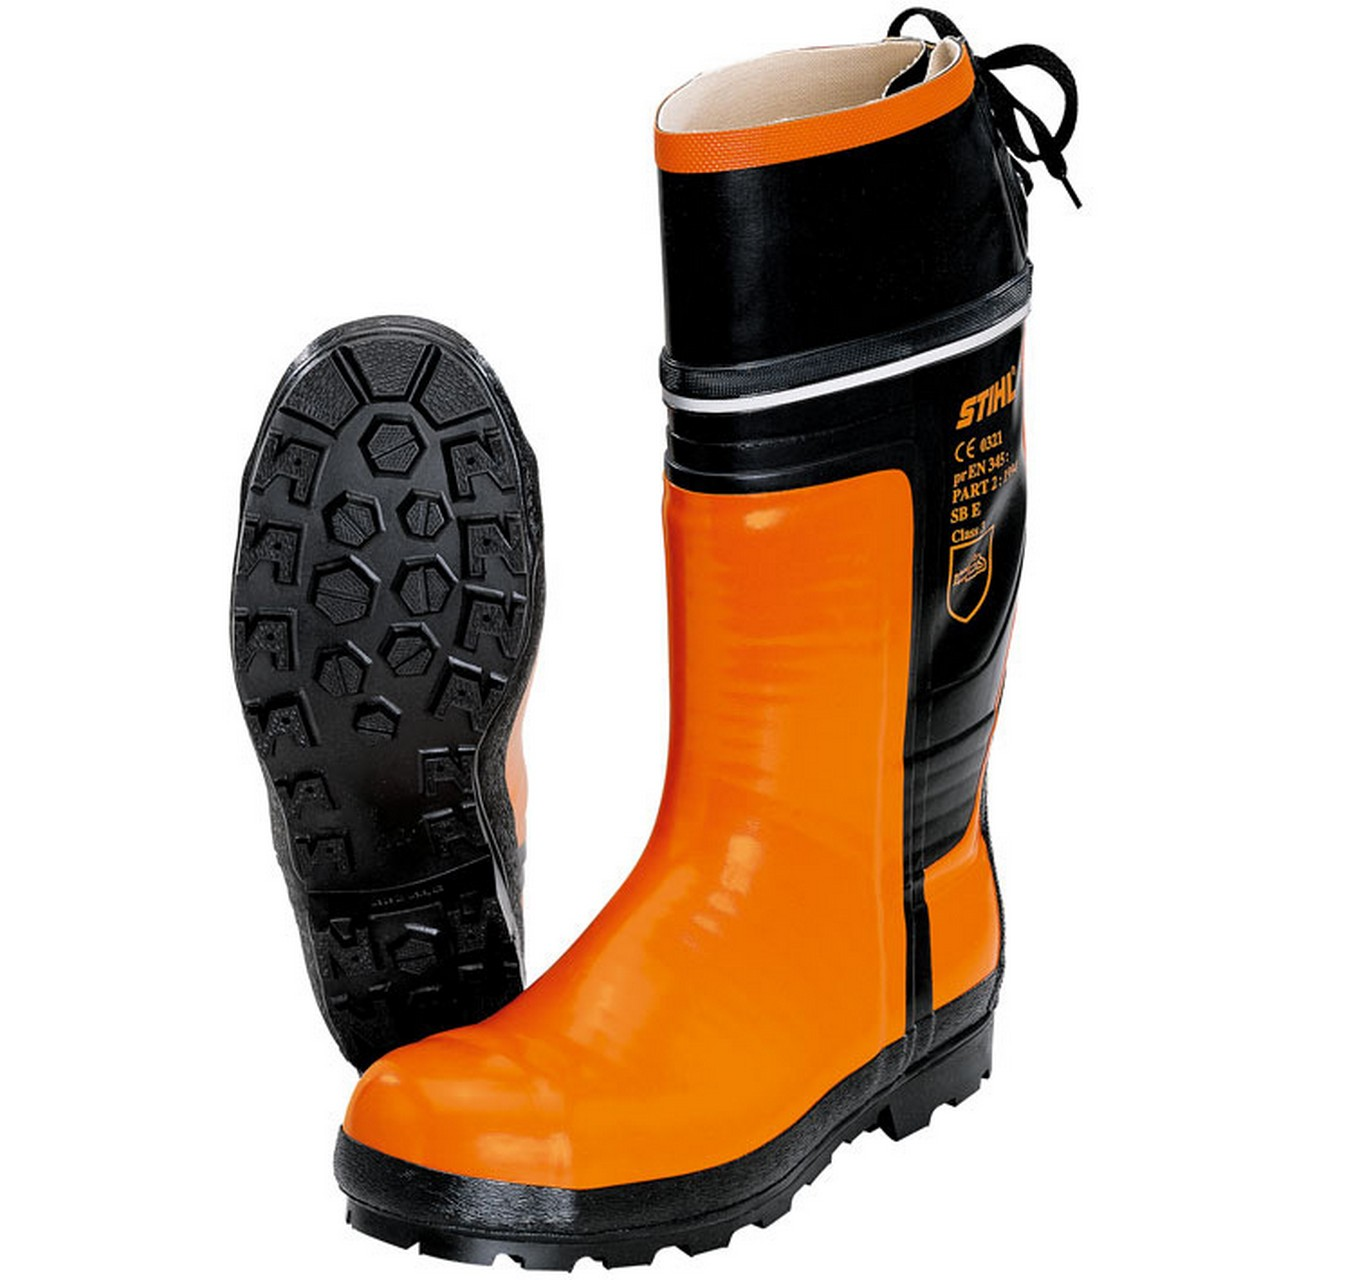 Special Rubber Boots Size 10.5